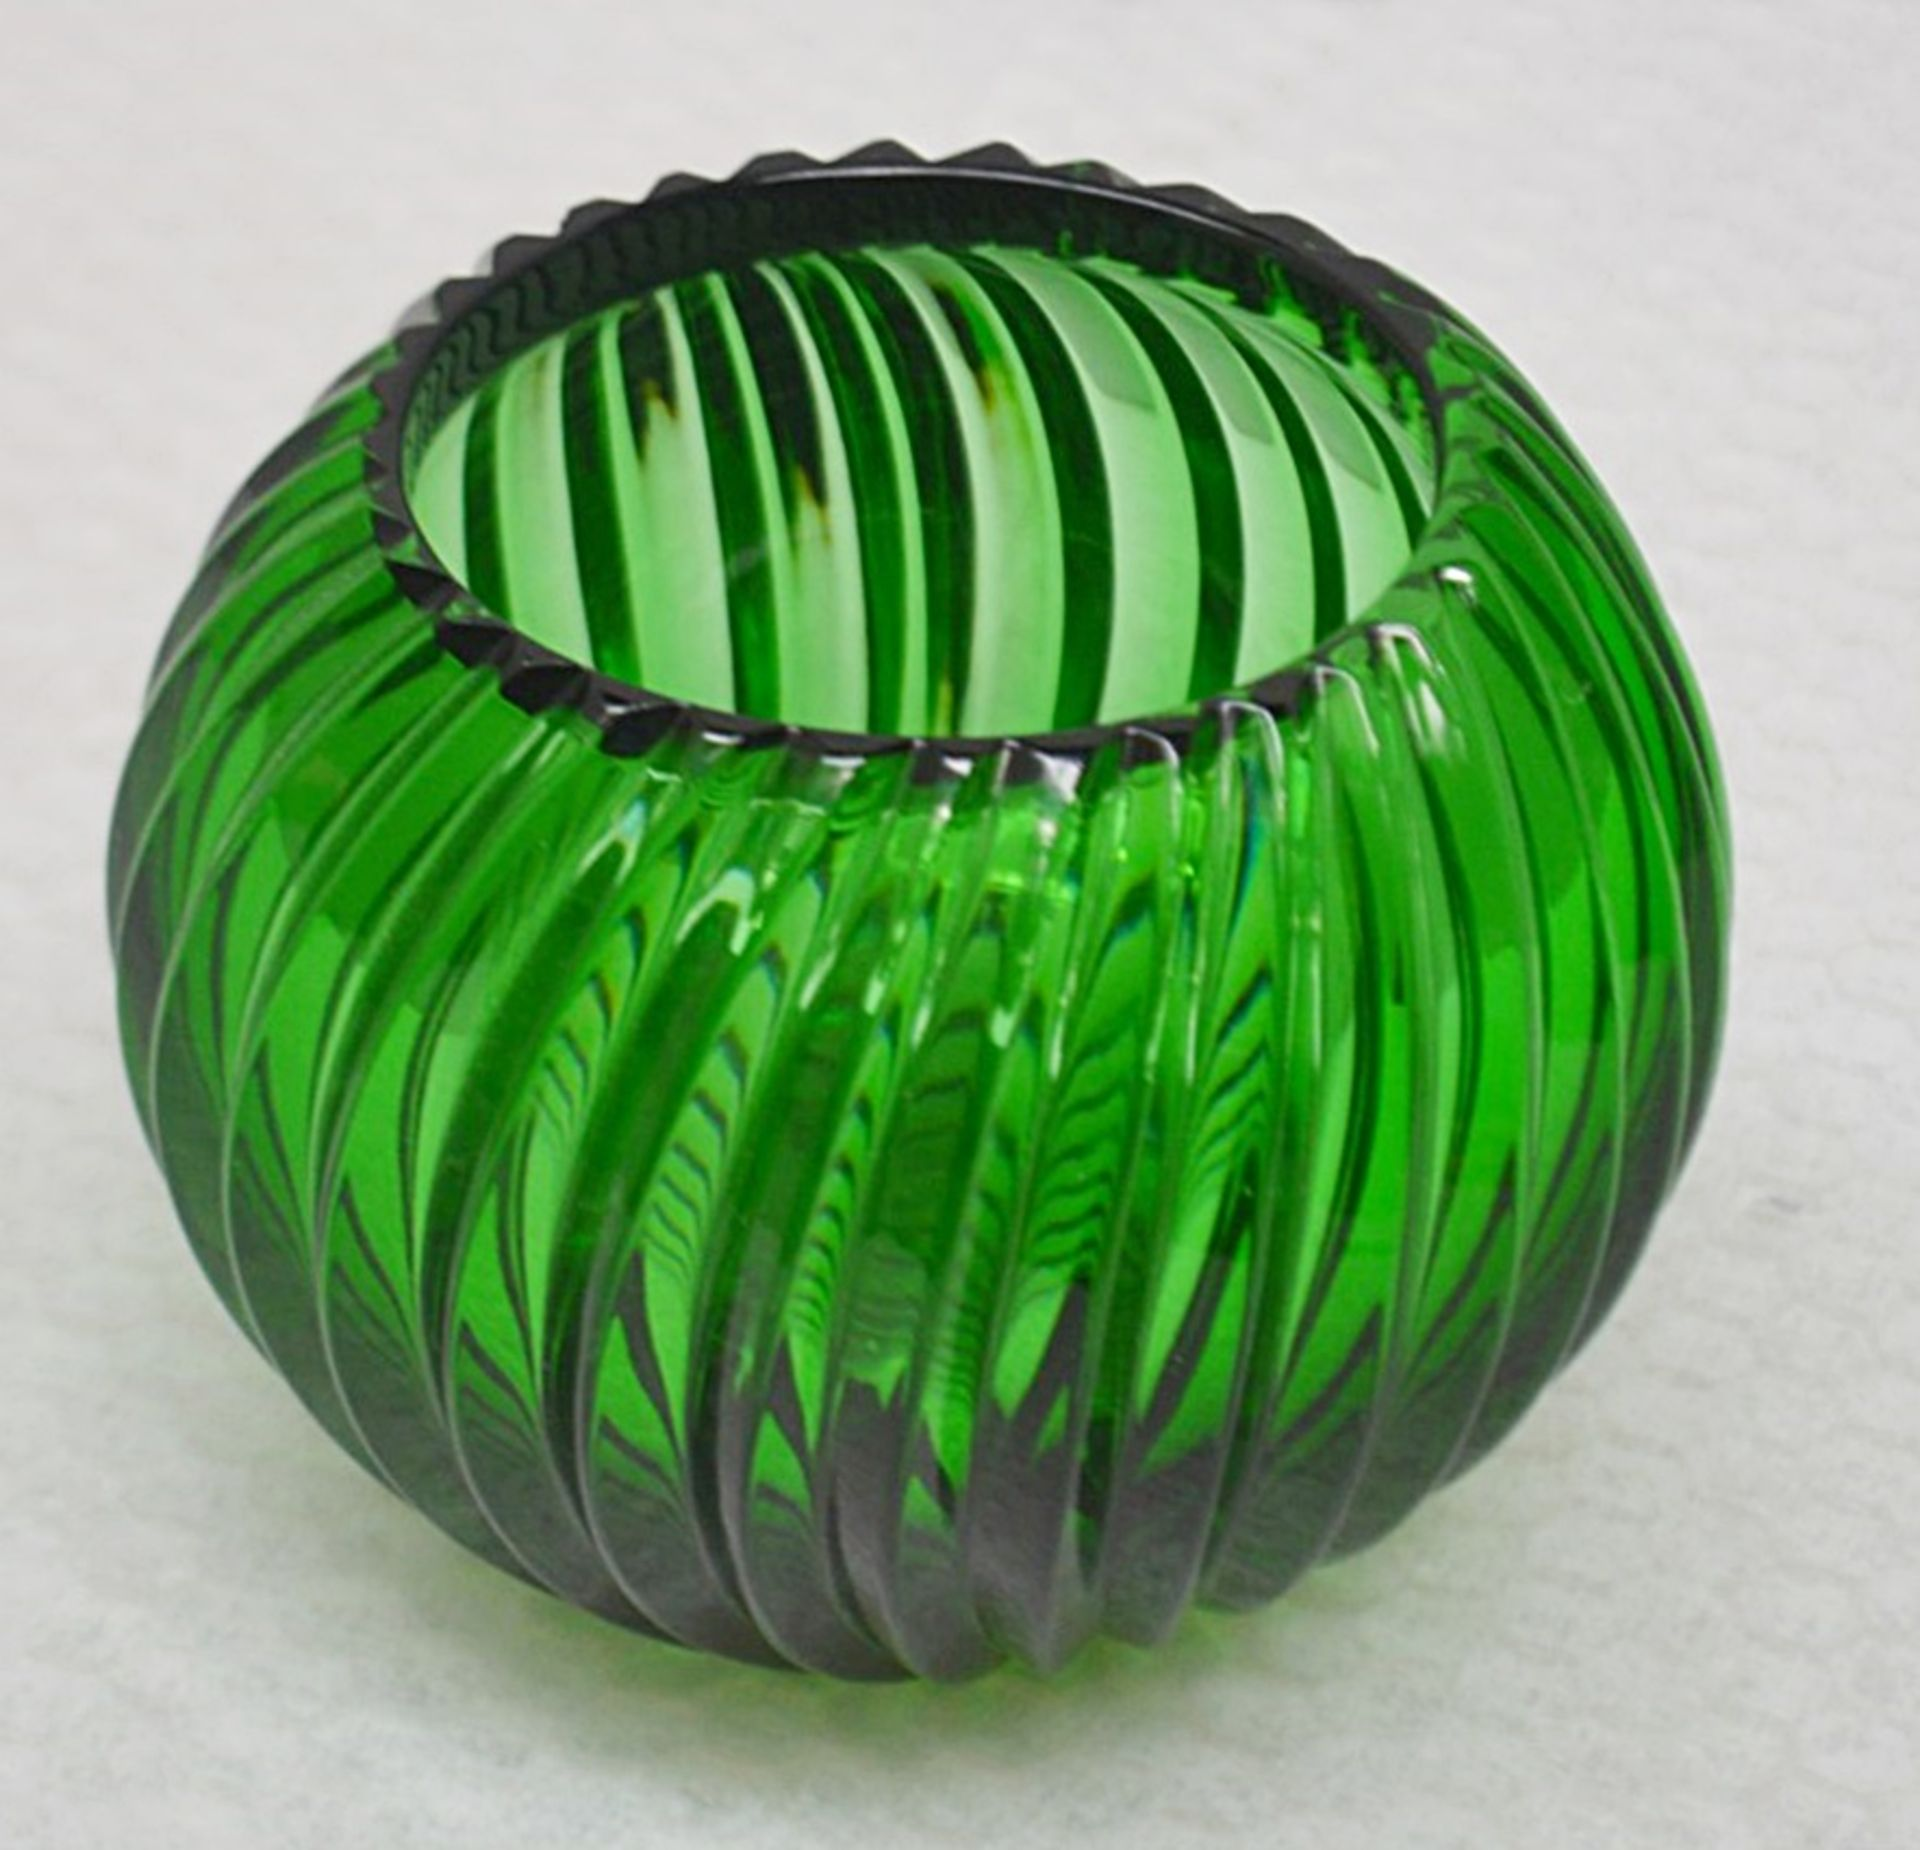 1 x BALDI 'Home Jewels' Italian Hand-crafted Artisan Crystal Bowl In Green - Dimensions: Height 10cm - Image 3 of 3